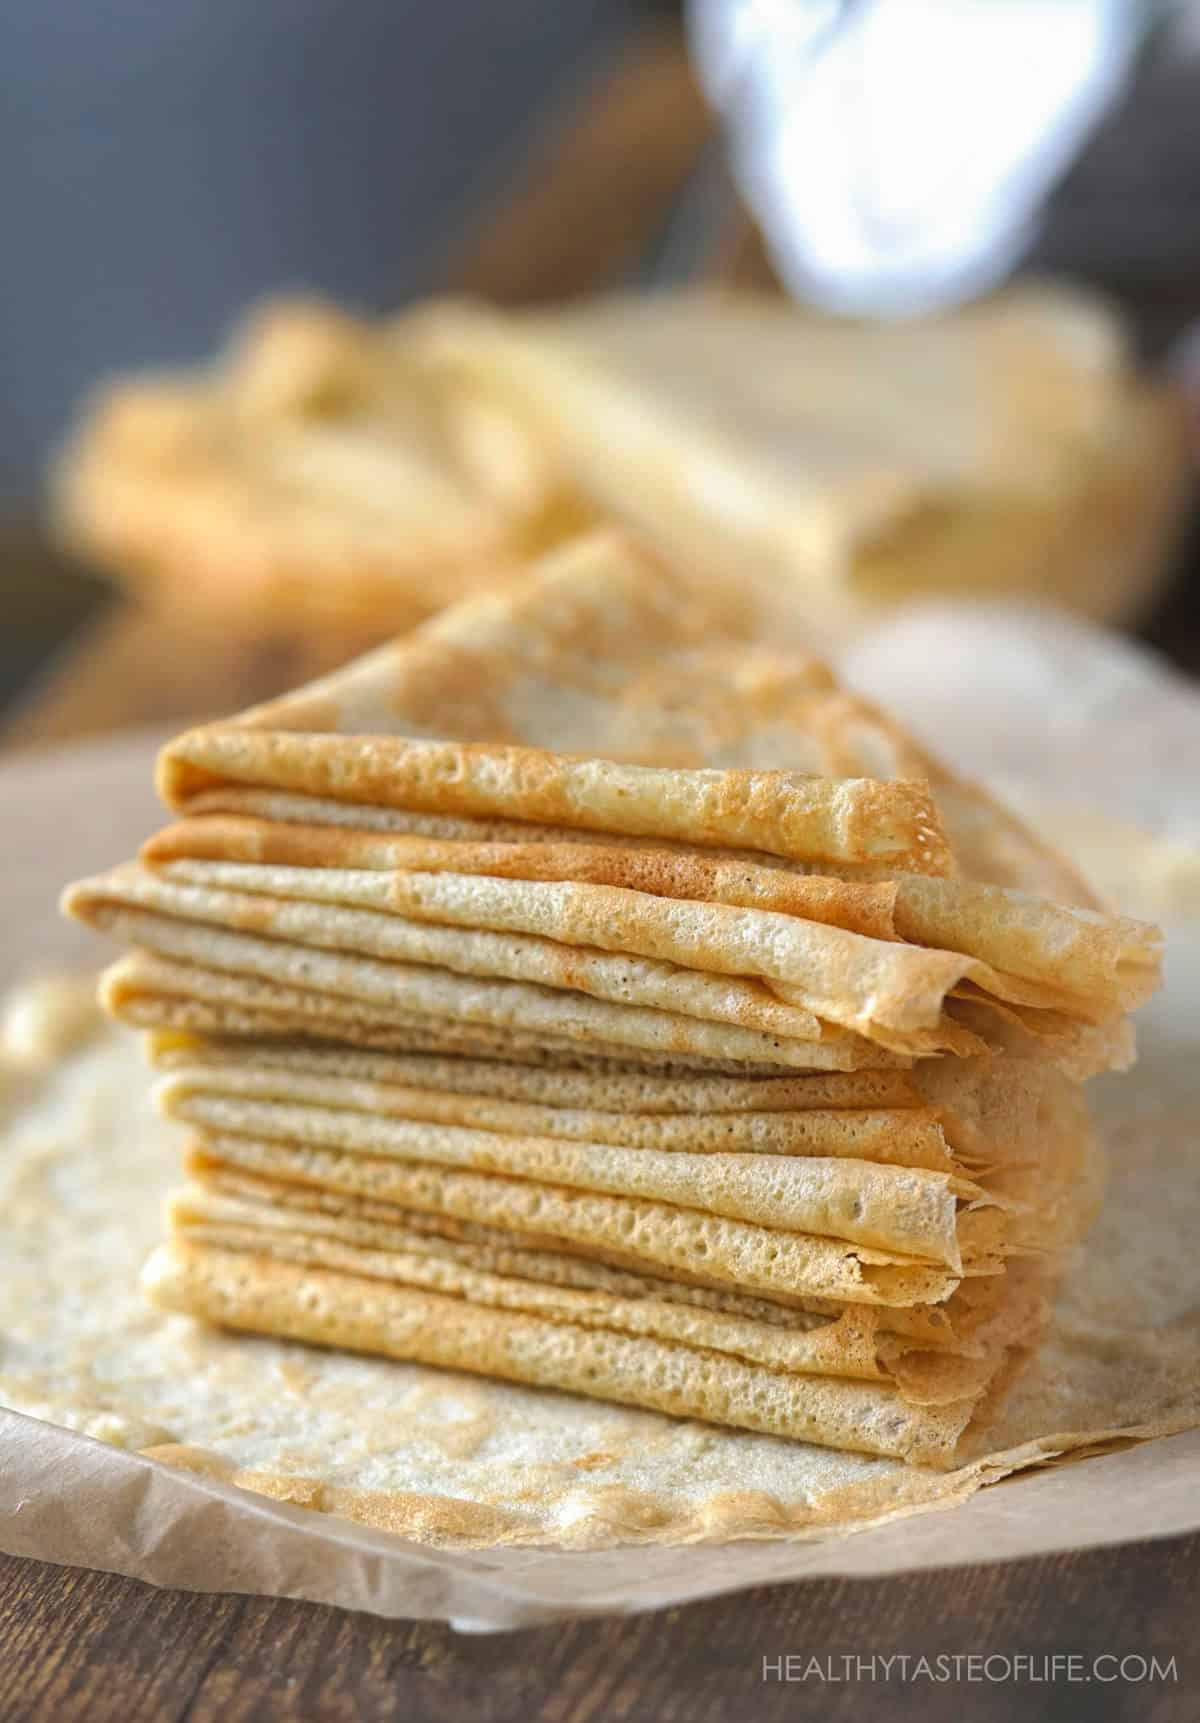 Gluten Free crepes stacked.